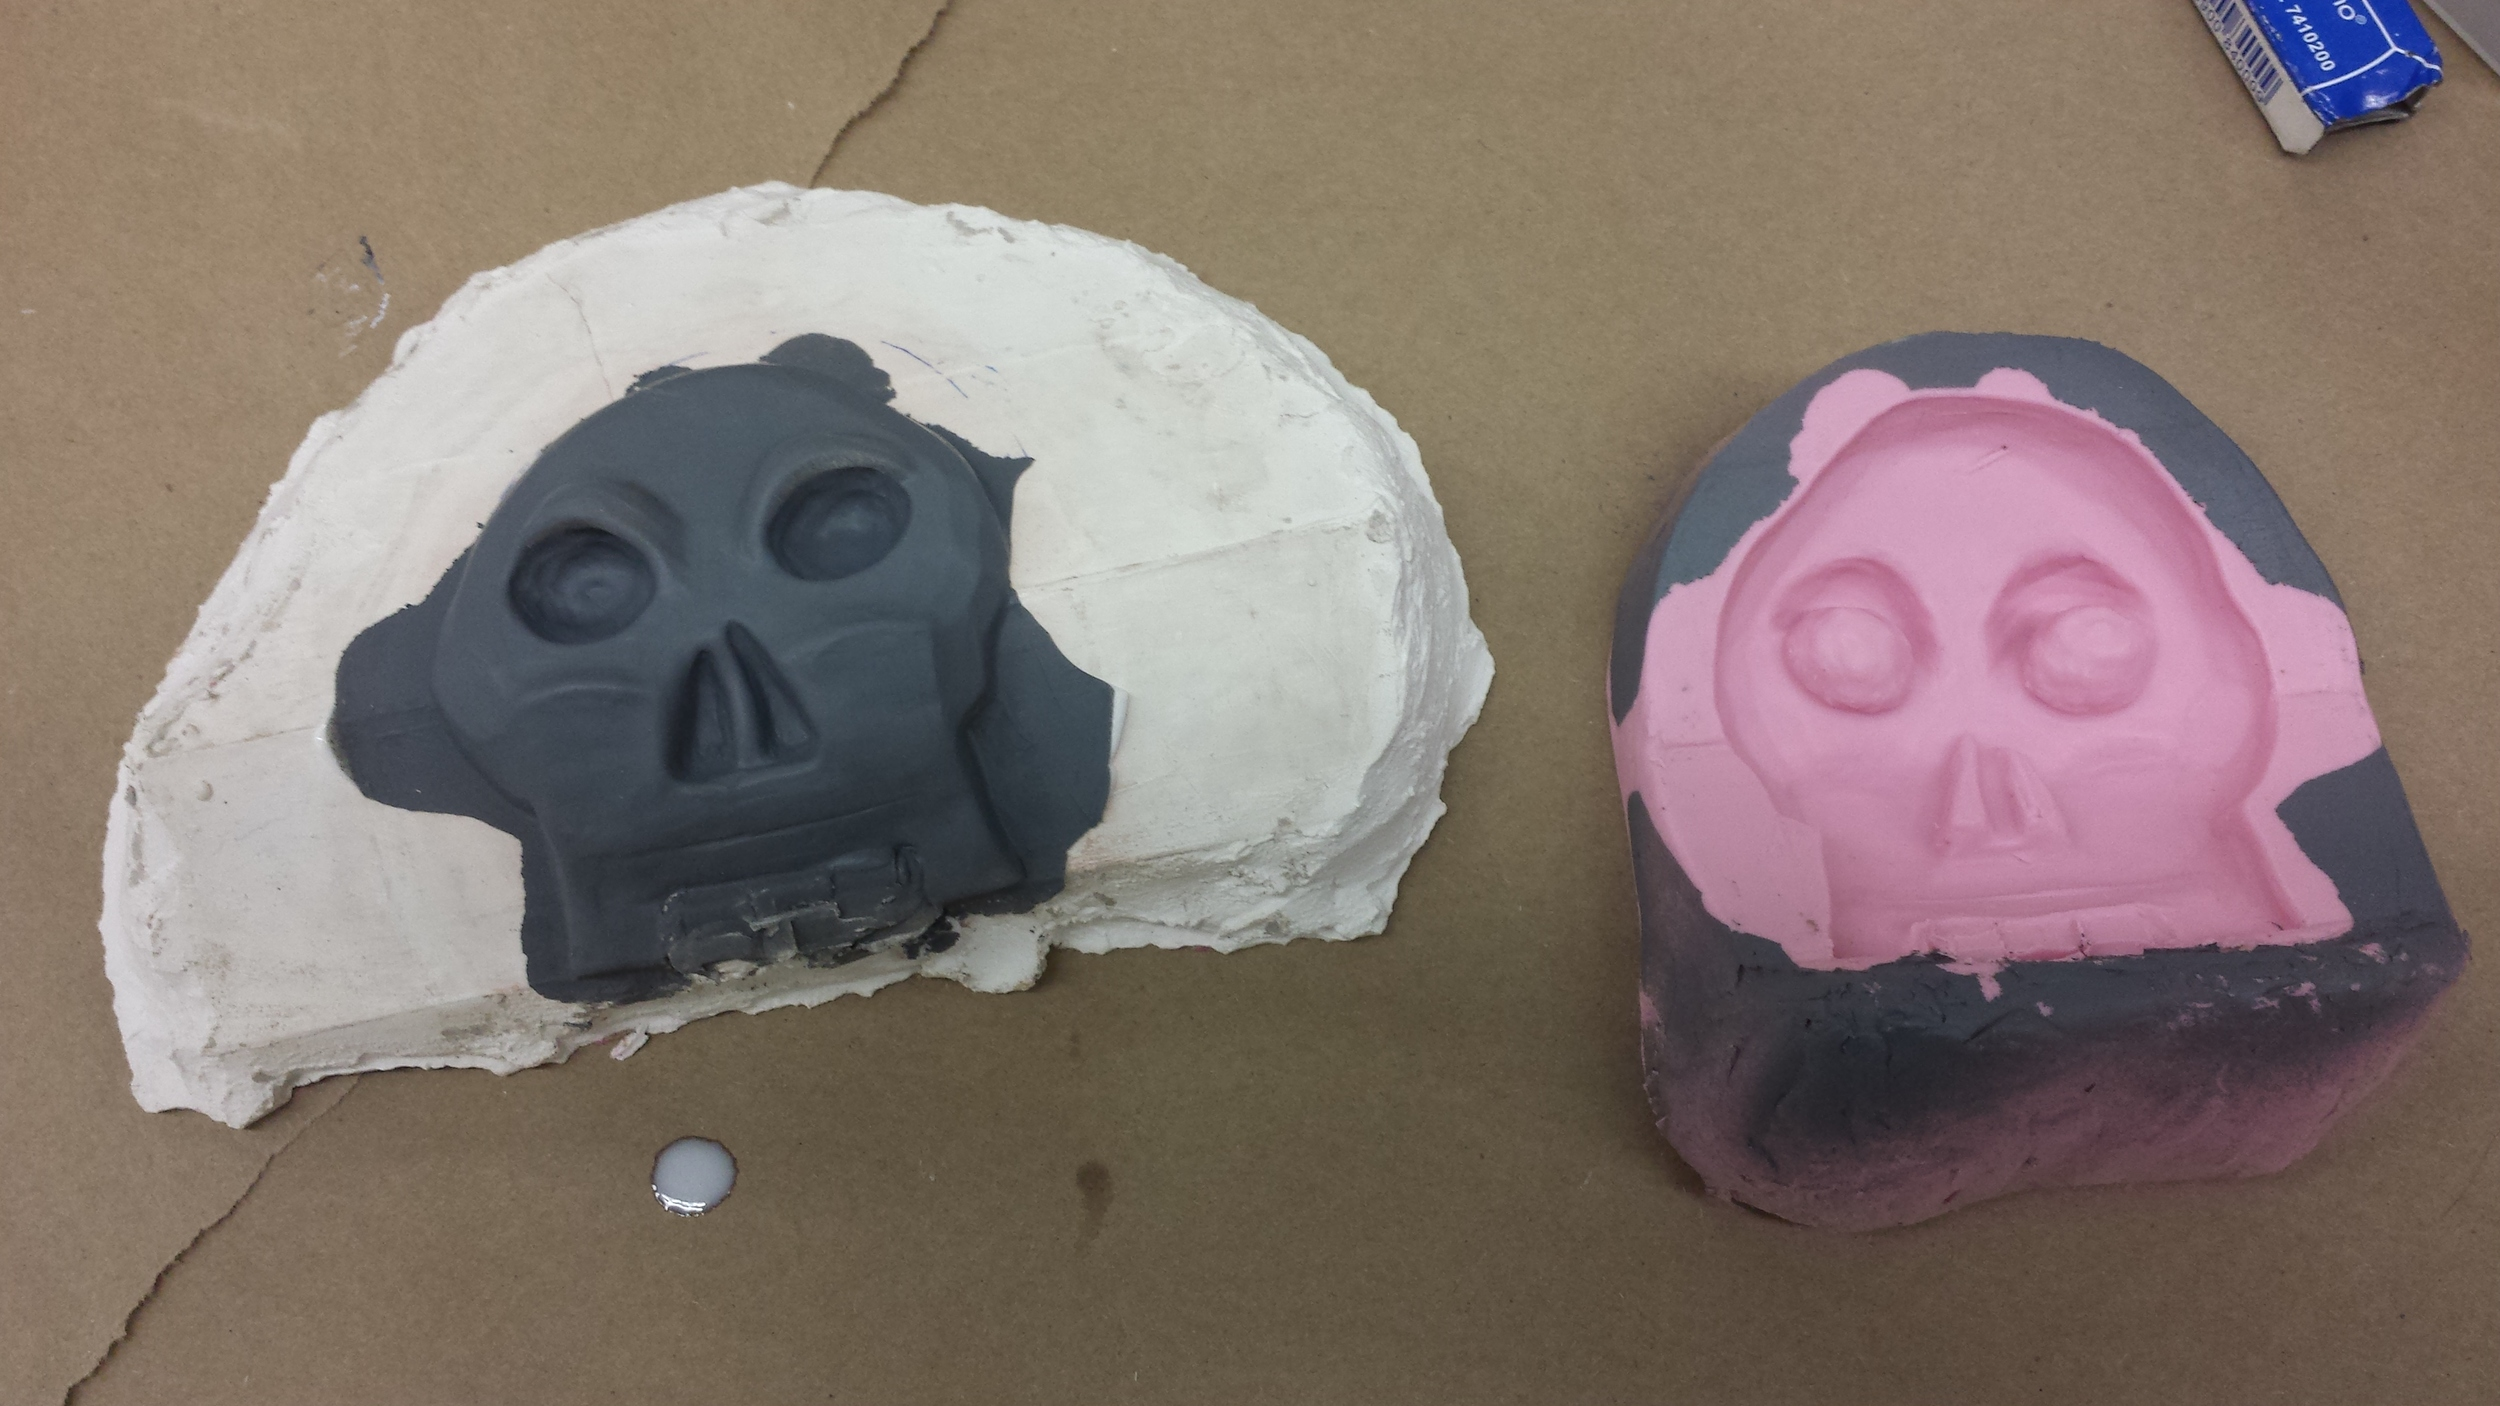 Plastic cast and silicone mold of decorative piece for pirate chest. (2015)